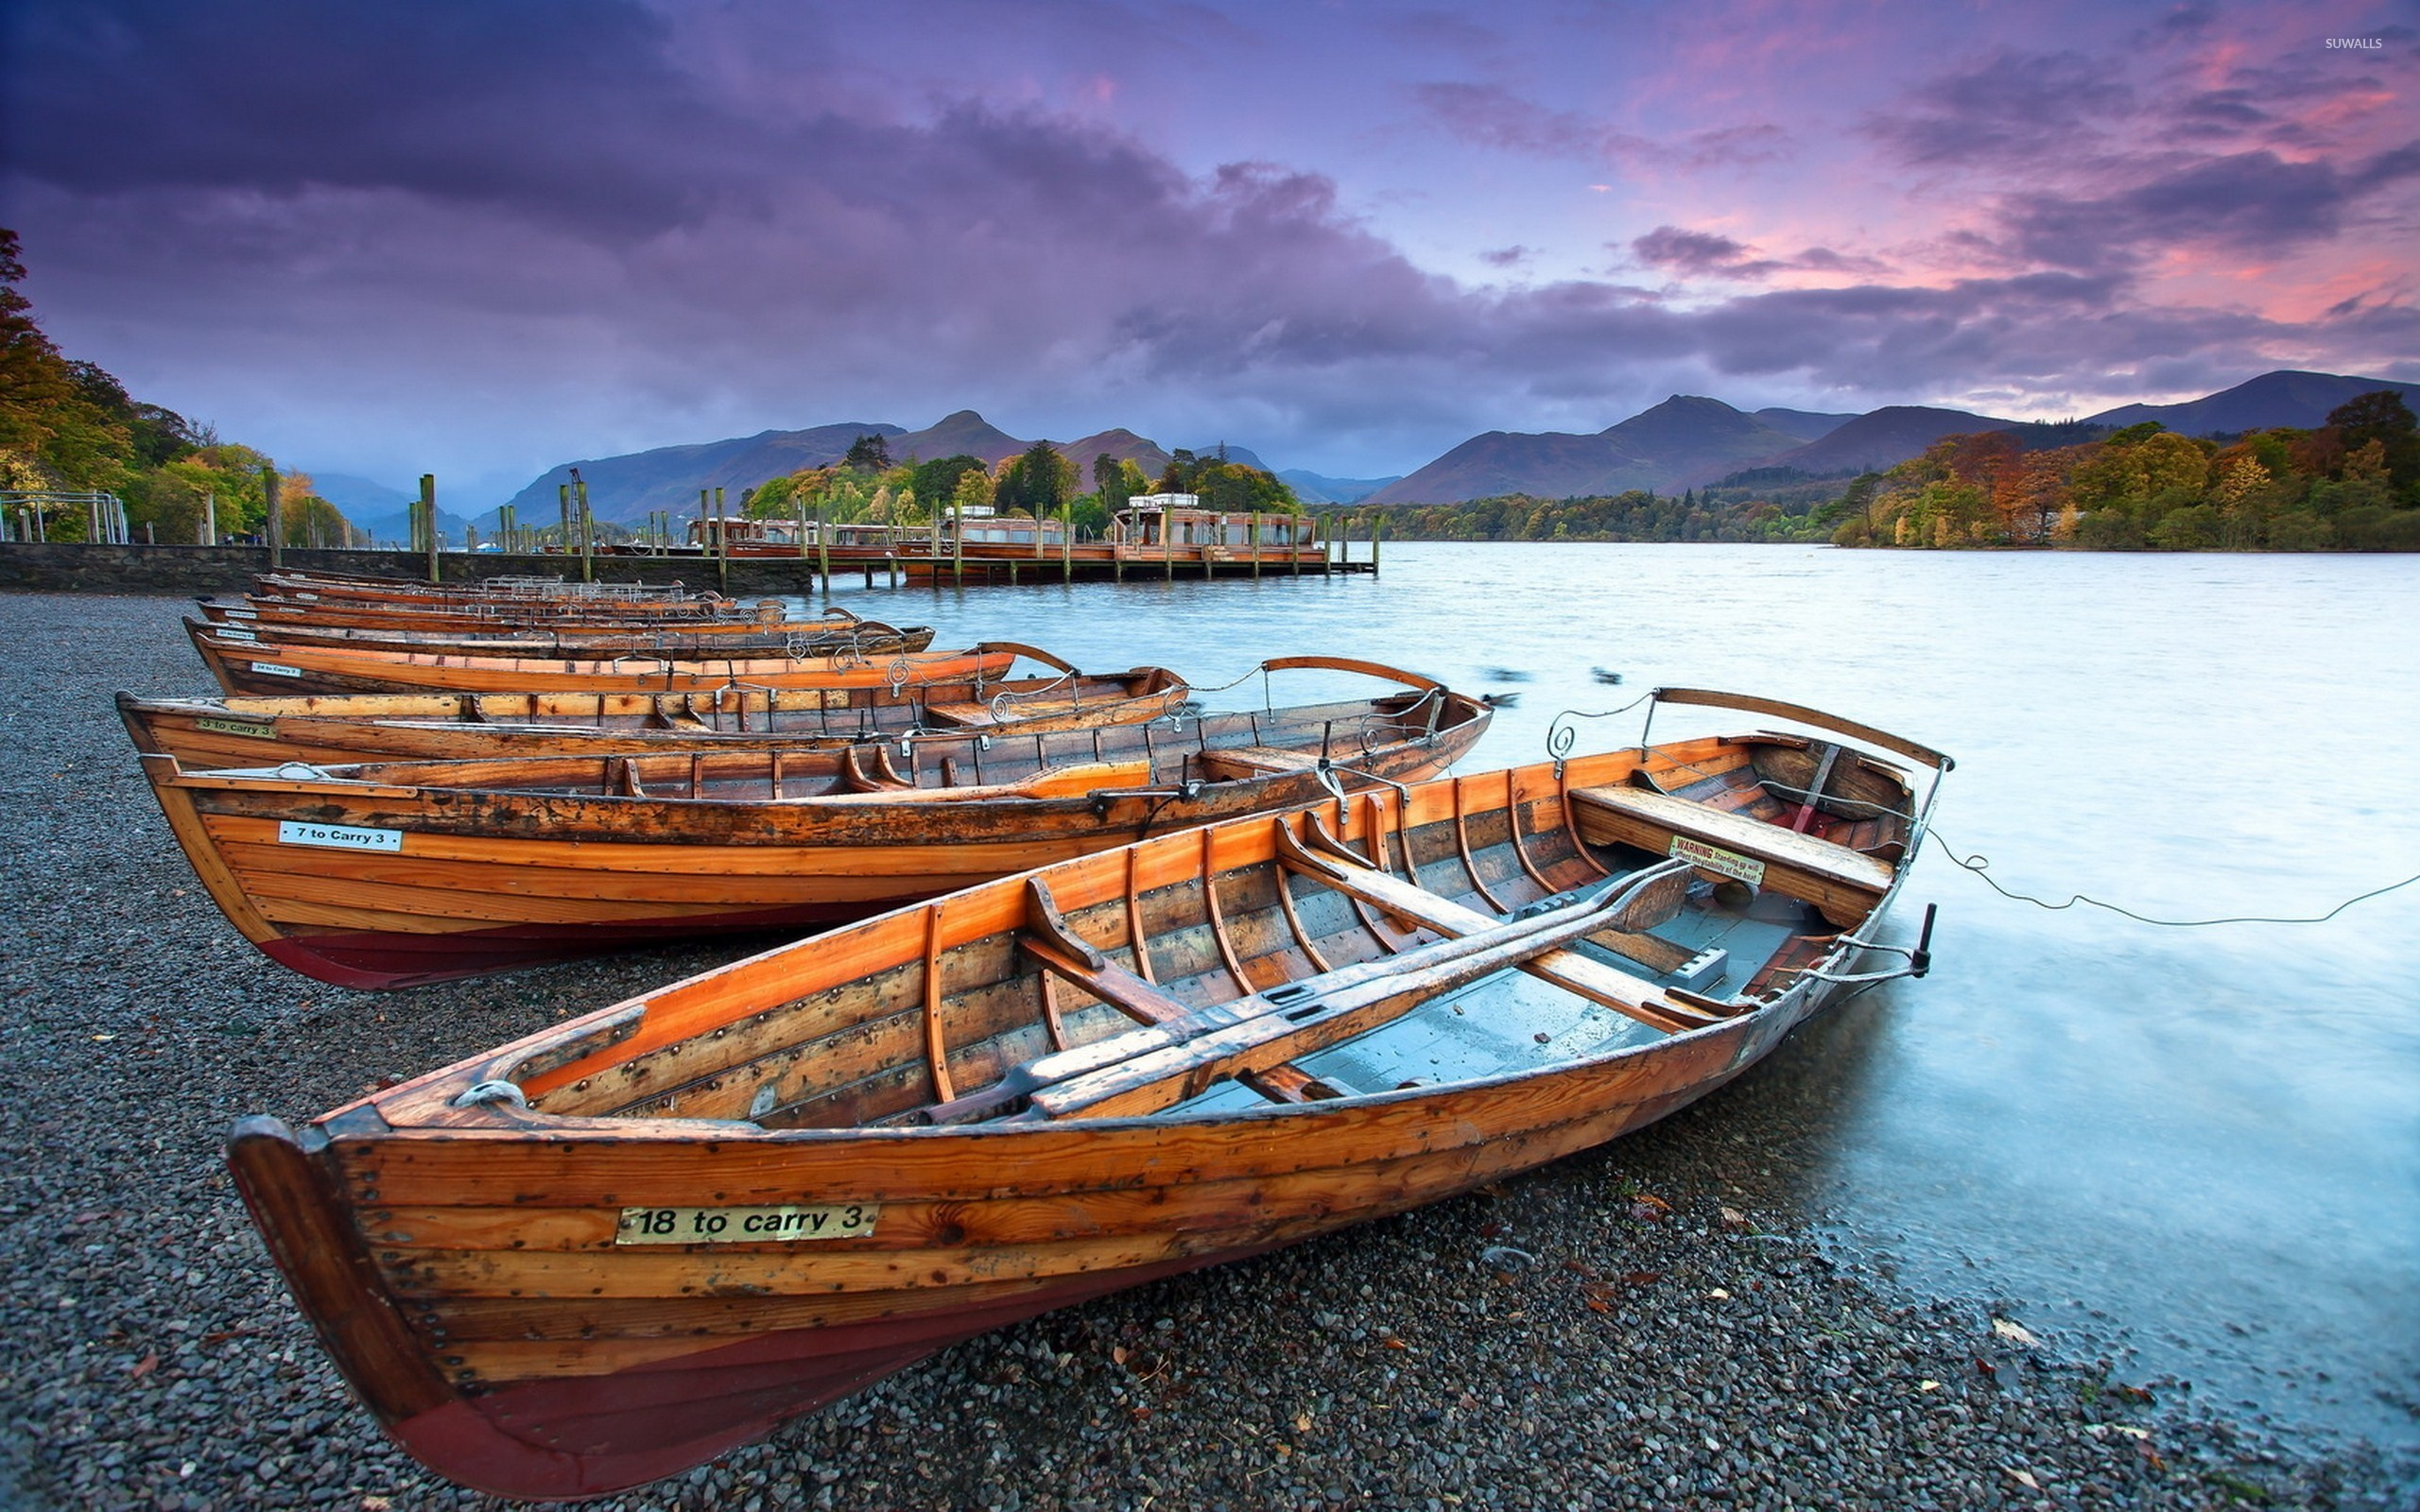 Wooden Boats On The Pebble Beach Of River Wallpaper